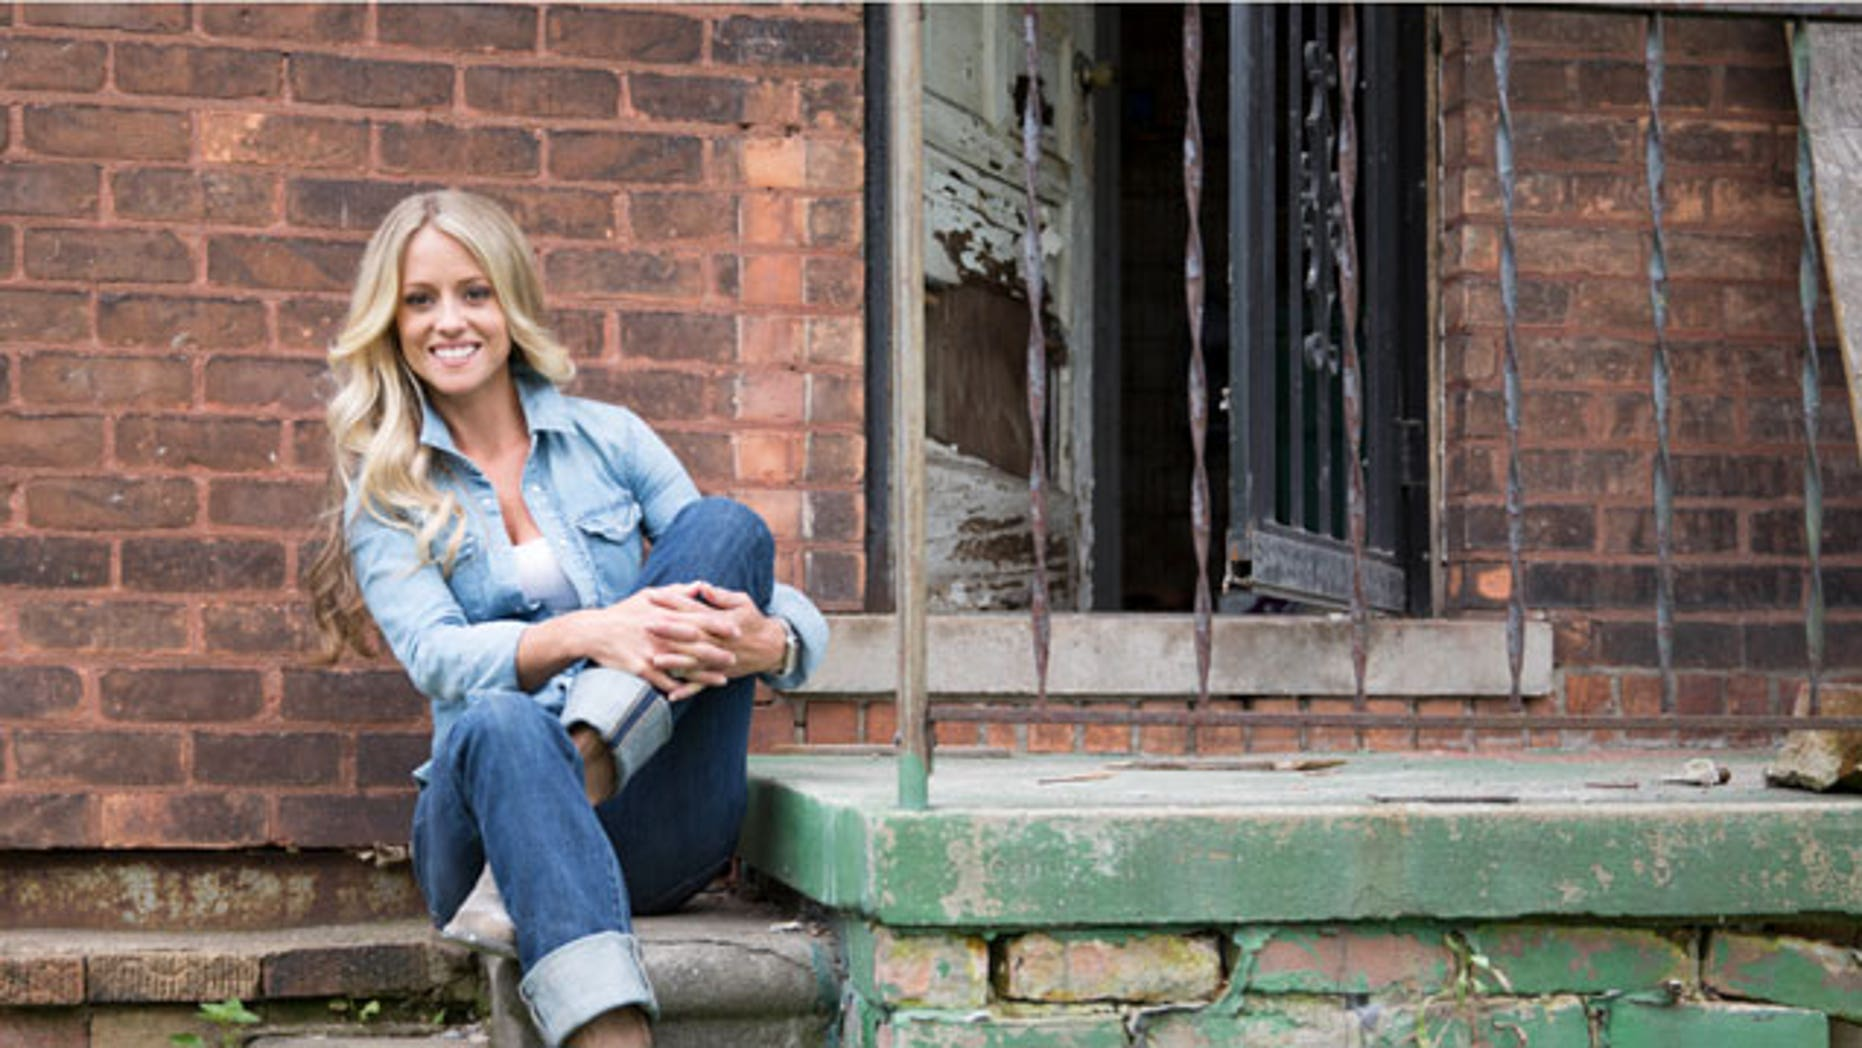 Nicole Curtis Wants You to Know Her Life Is Not Perfect advise